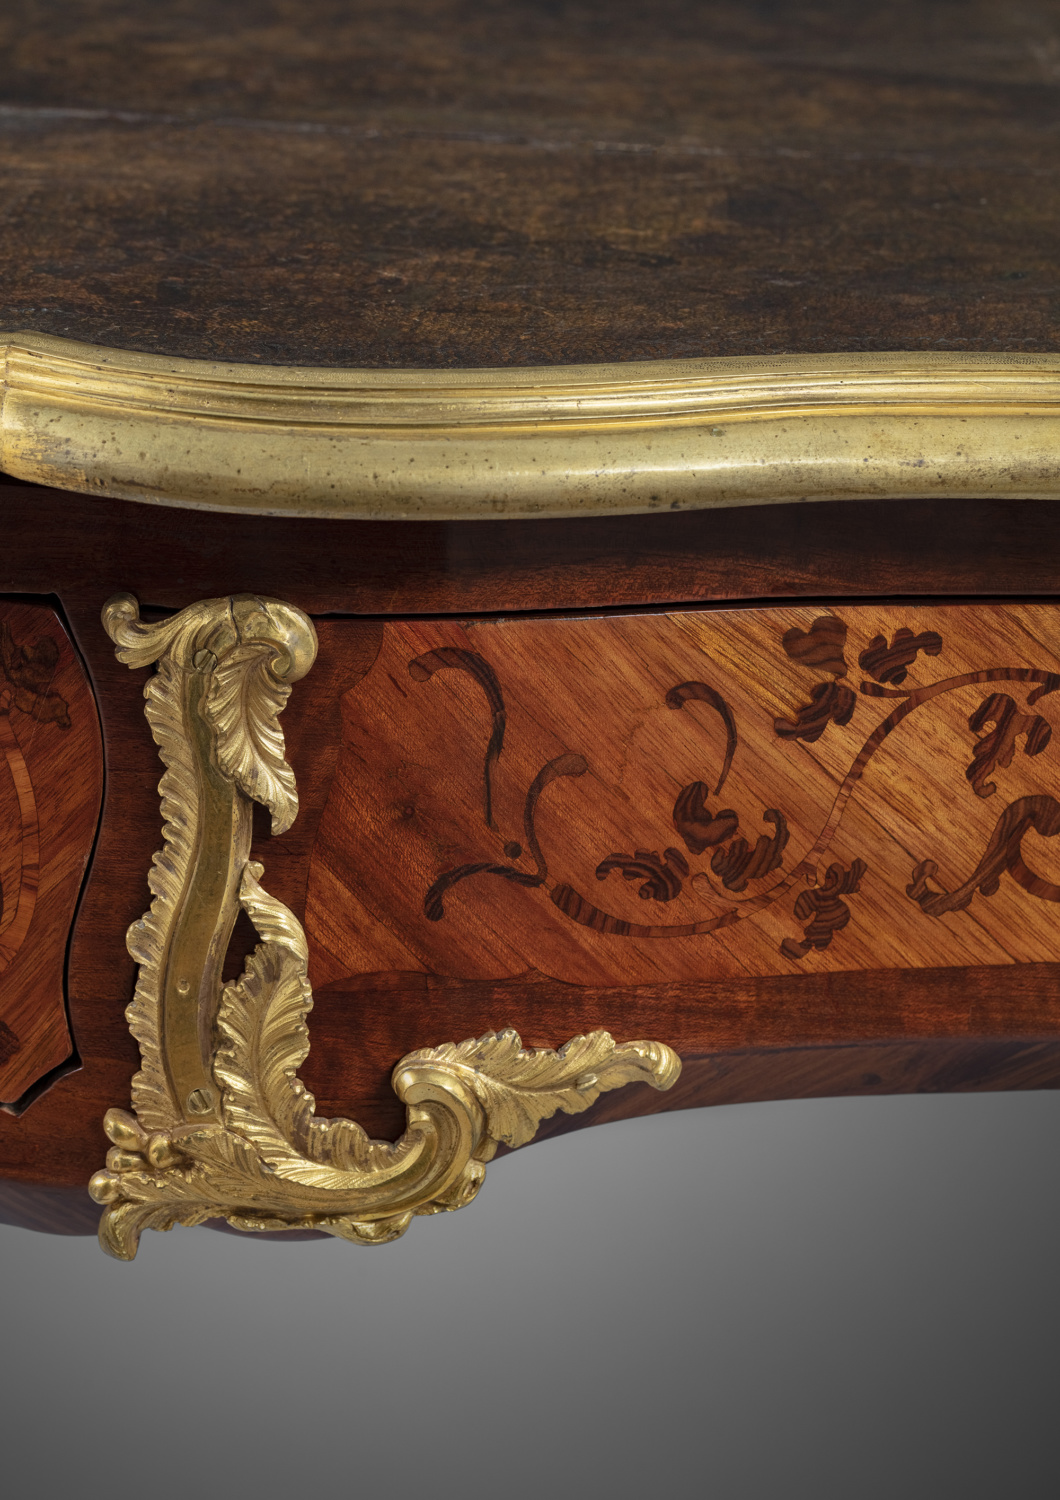 A Louis XV ormolu-mounted marquetry desk - Galerie Kugel